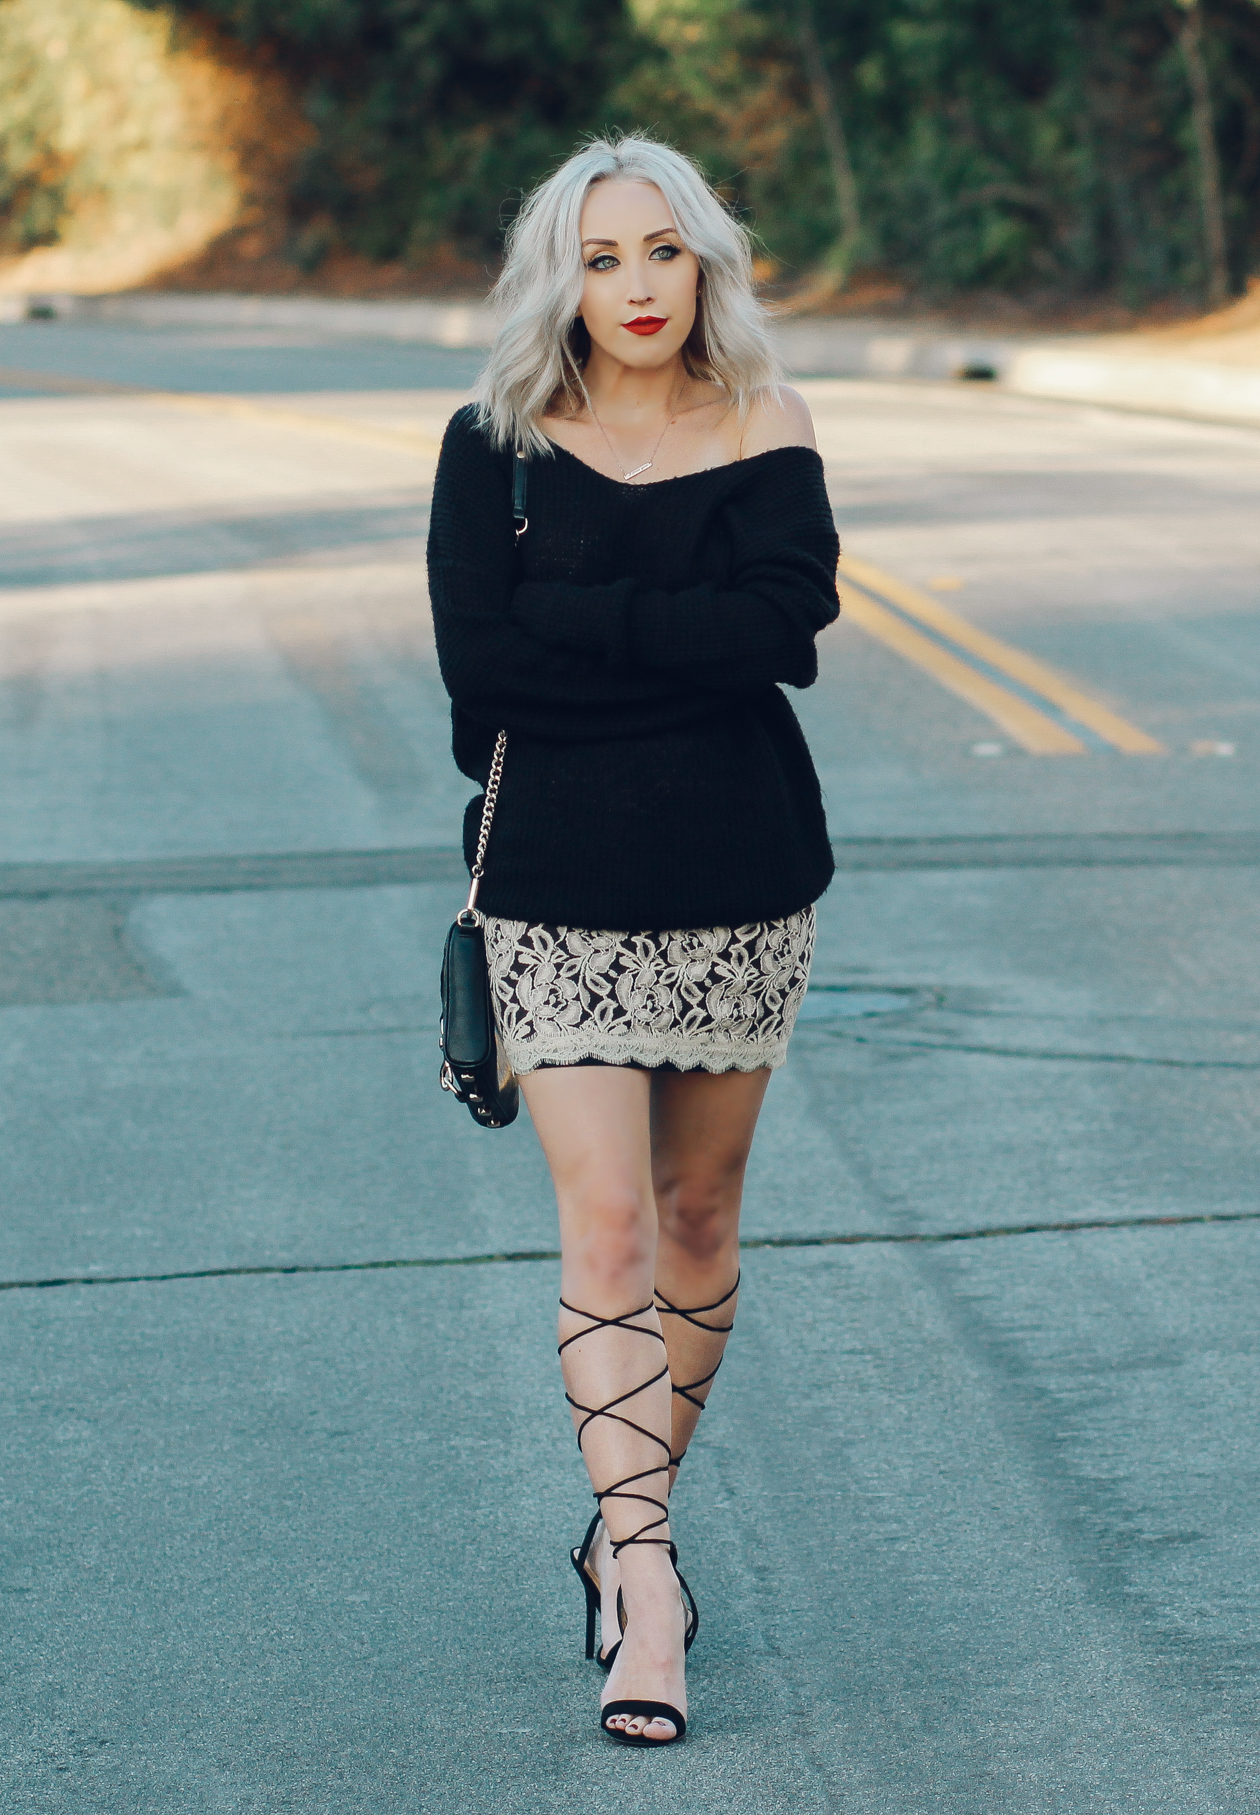 Street Style |Lace Skirt with Oversized Waffle Knit Pullover | BlondieintheCity.com